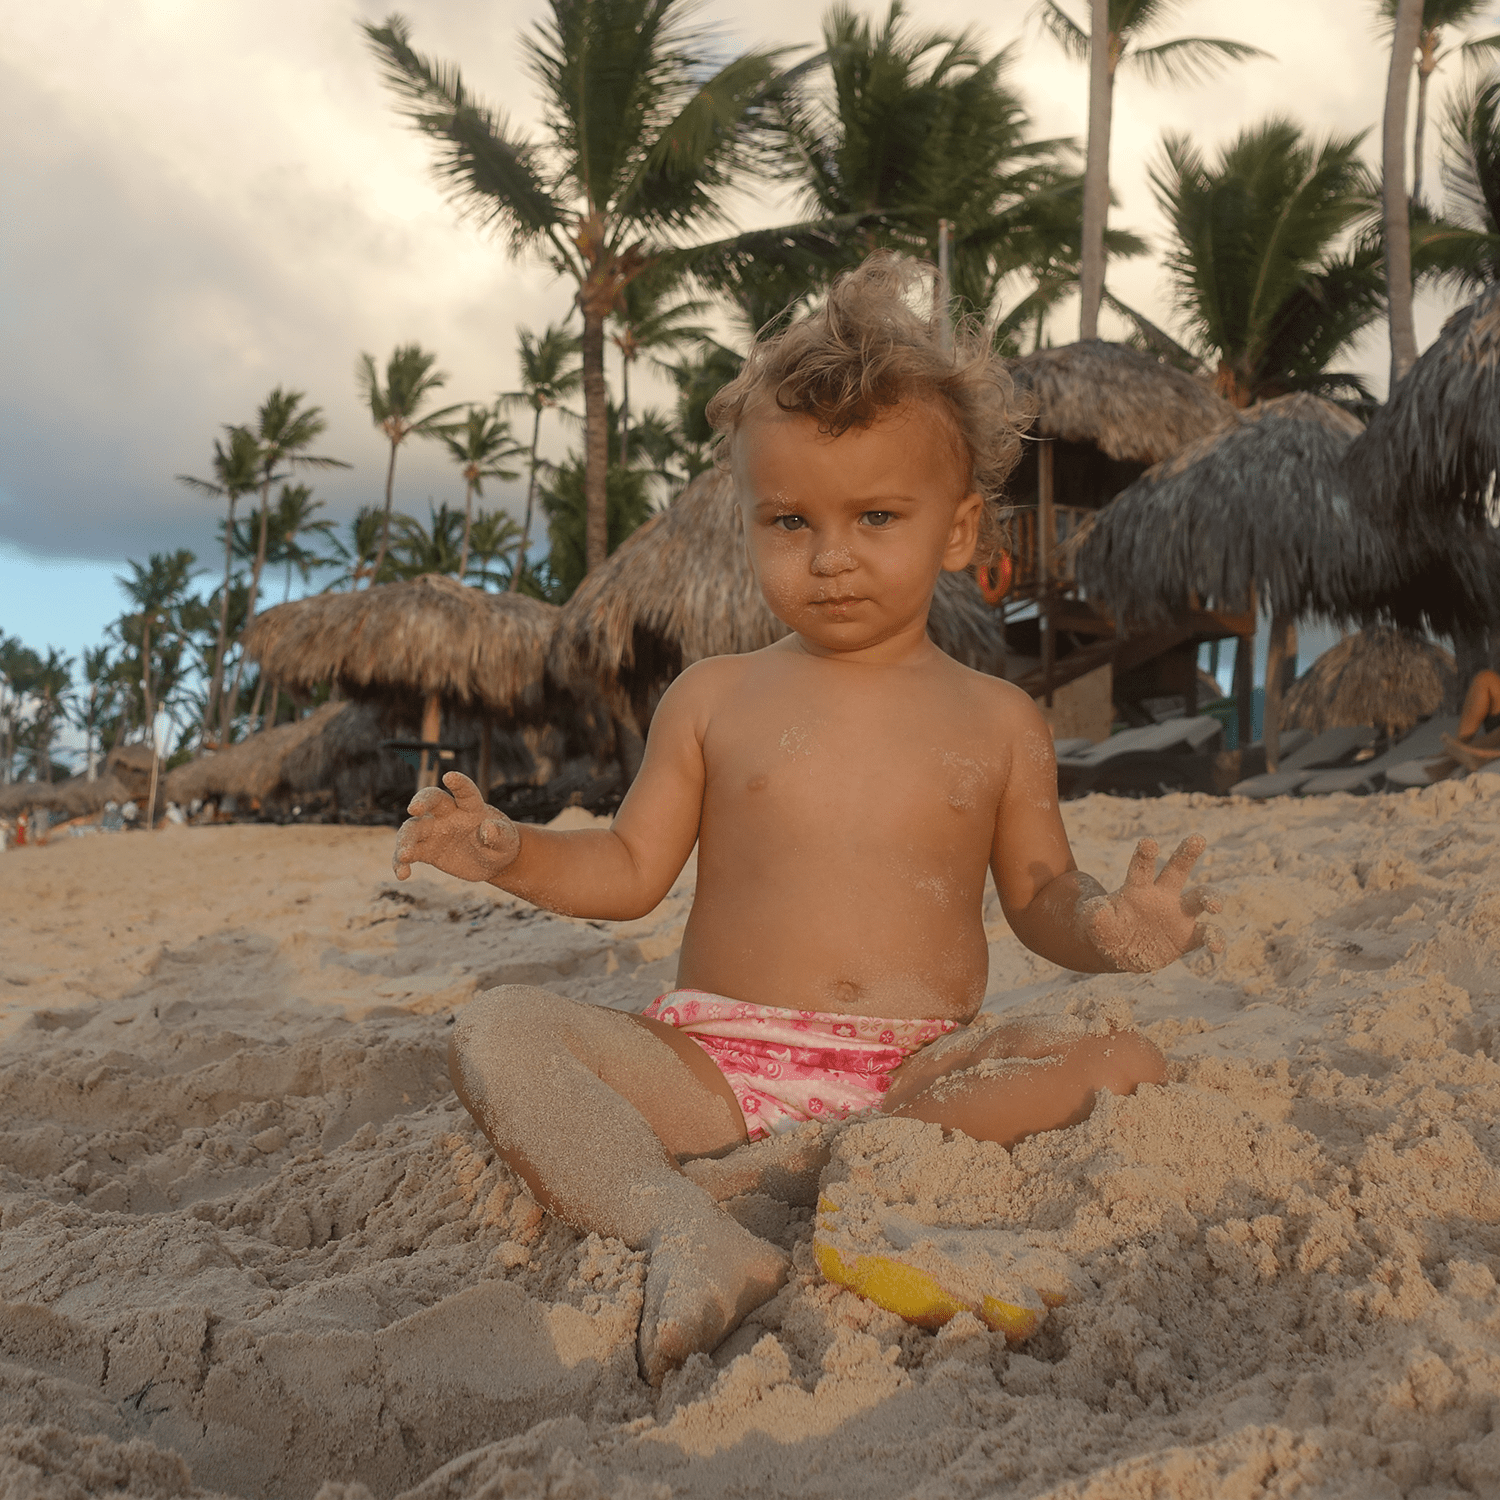 Anastasia Louise Sudentas visits Punta Cana for the first time